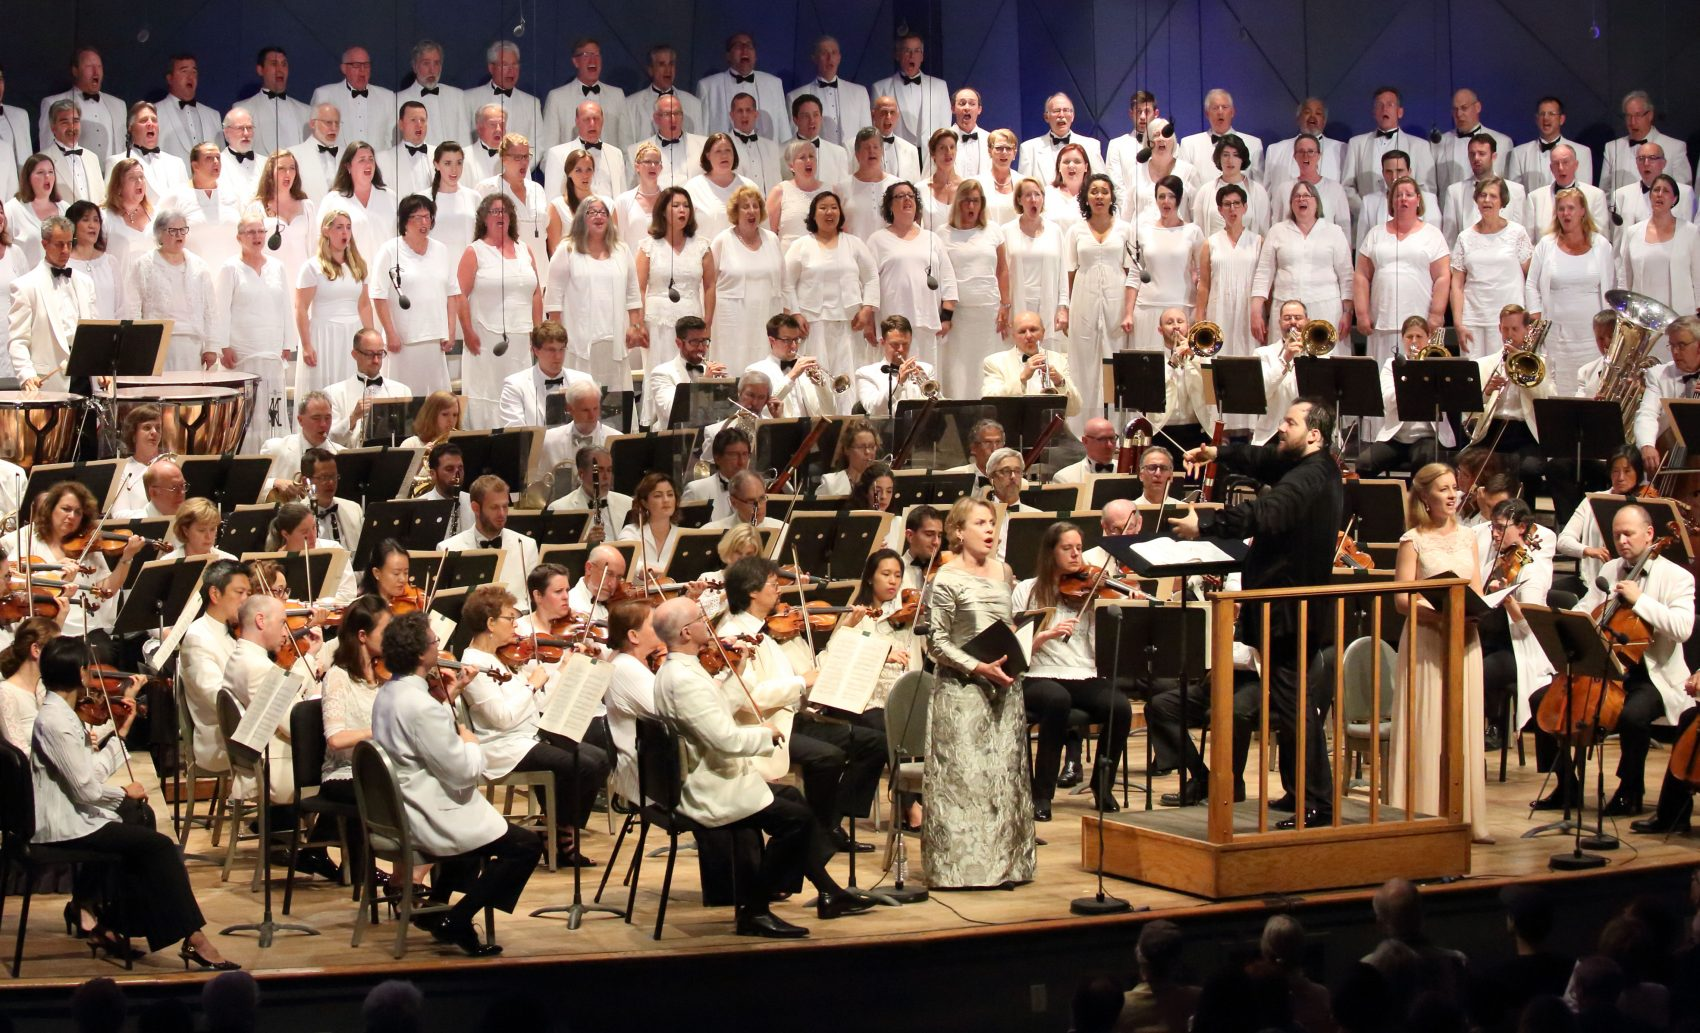 Andris Nelsons leads the Boston Symphony Orchestra, Tanglewood Festival Chorus, Bernarda Fink and Malin Christensson on opening night at Tanglewood. (Courtesy Hilary Scott/BSO)